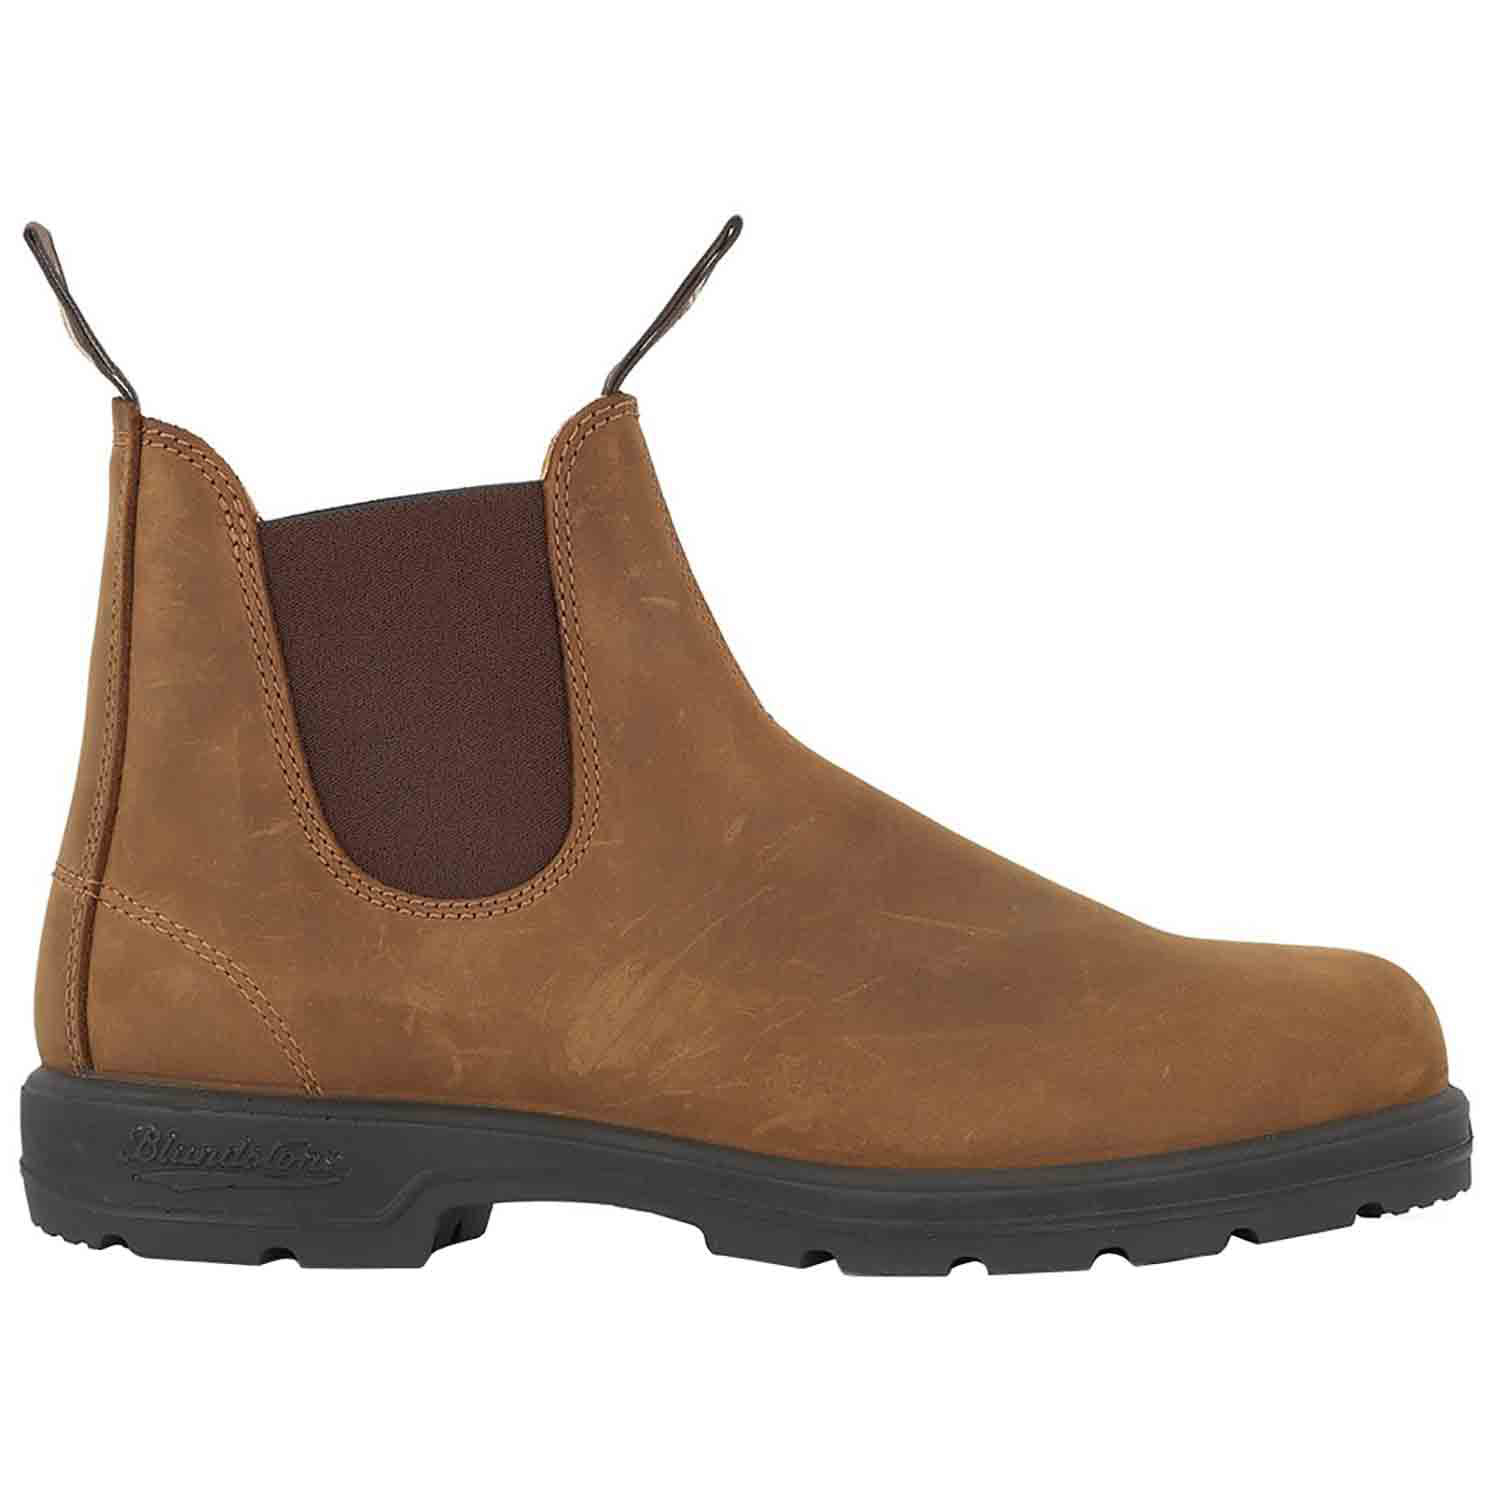 From Boots Available Blackleaf Boots Blackleaf From Available 6yvfgIYb7